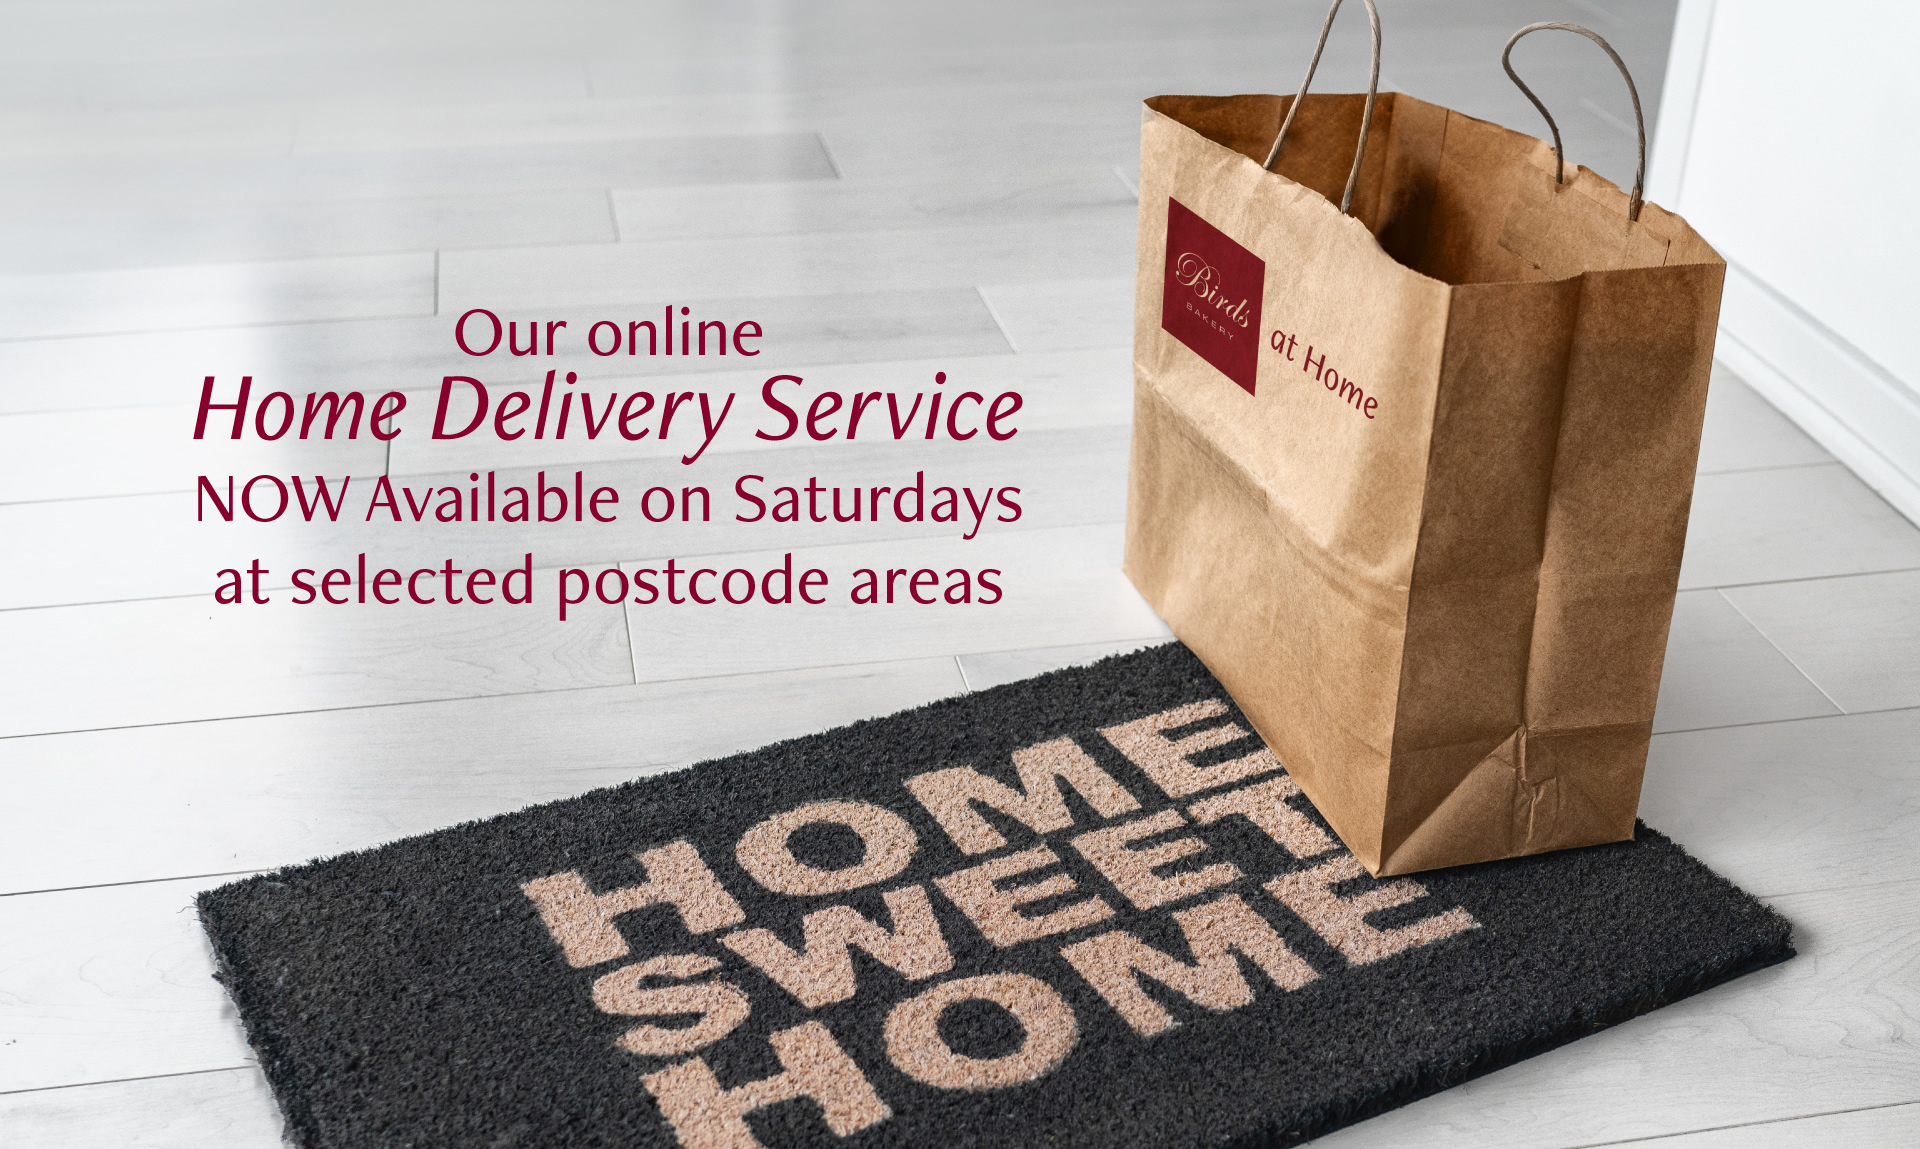 Our online home delivery service now available on Saturdays at selected postcode areas